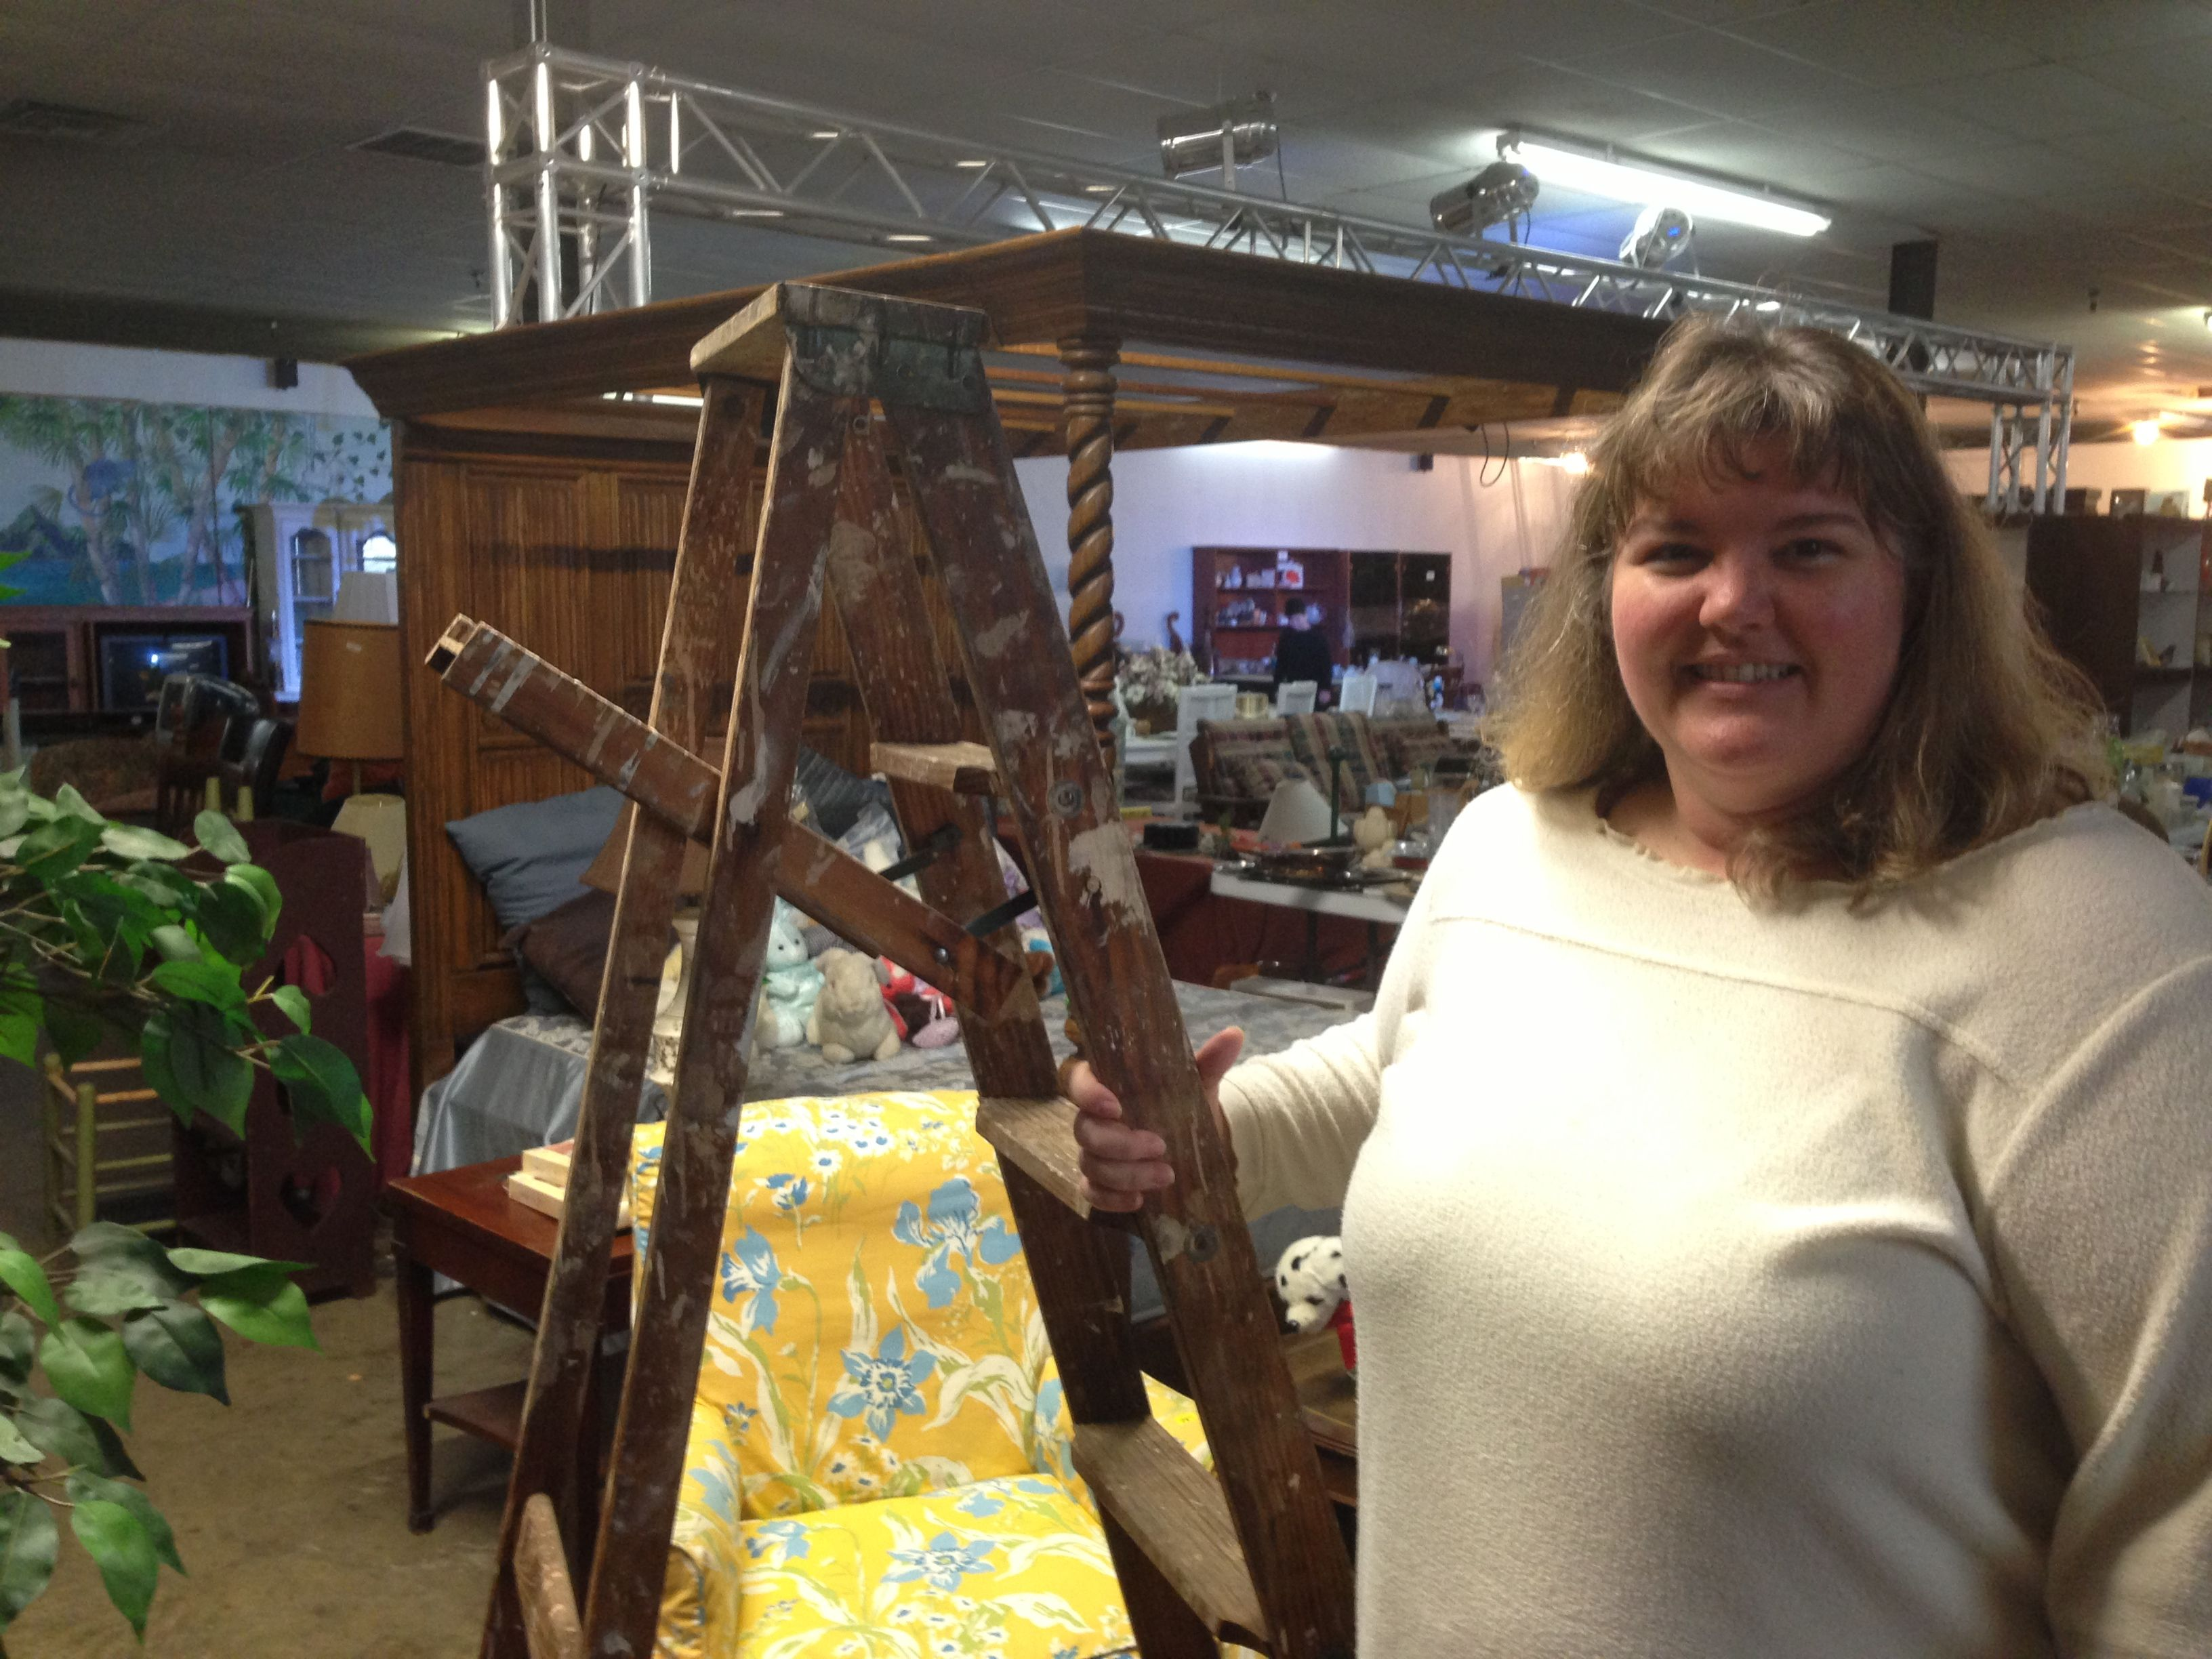 """Looks like a well used ladder, but it's more! Pamela Mallow of Dallas Soap Company   (Pam@dallassoapcompany.com) found this great shabby chic ladder, perfect for creating her table top display for the upcoming Houston """"Junk Hippy"""" show. The show is regionally based out of Houston, Amarillo, and Oklahoma City, and features handmade and vintage crafts.  No plans to head out of town? Great news! Pamela's handmade artisan soaps are now available at Second Chance Treasures!!"""